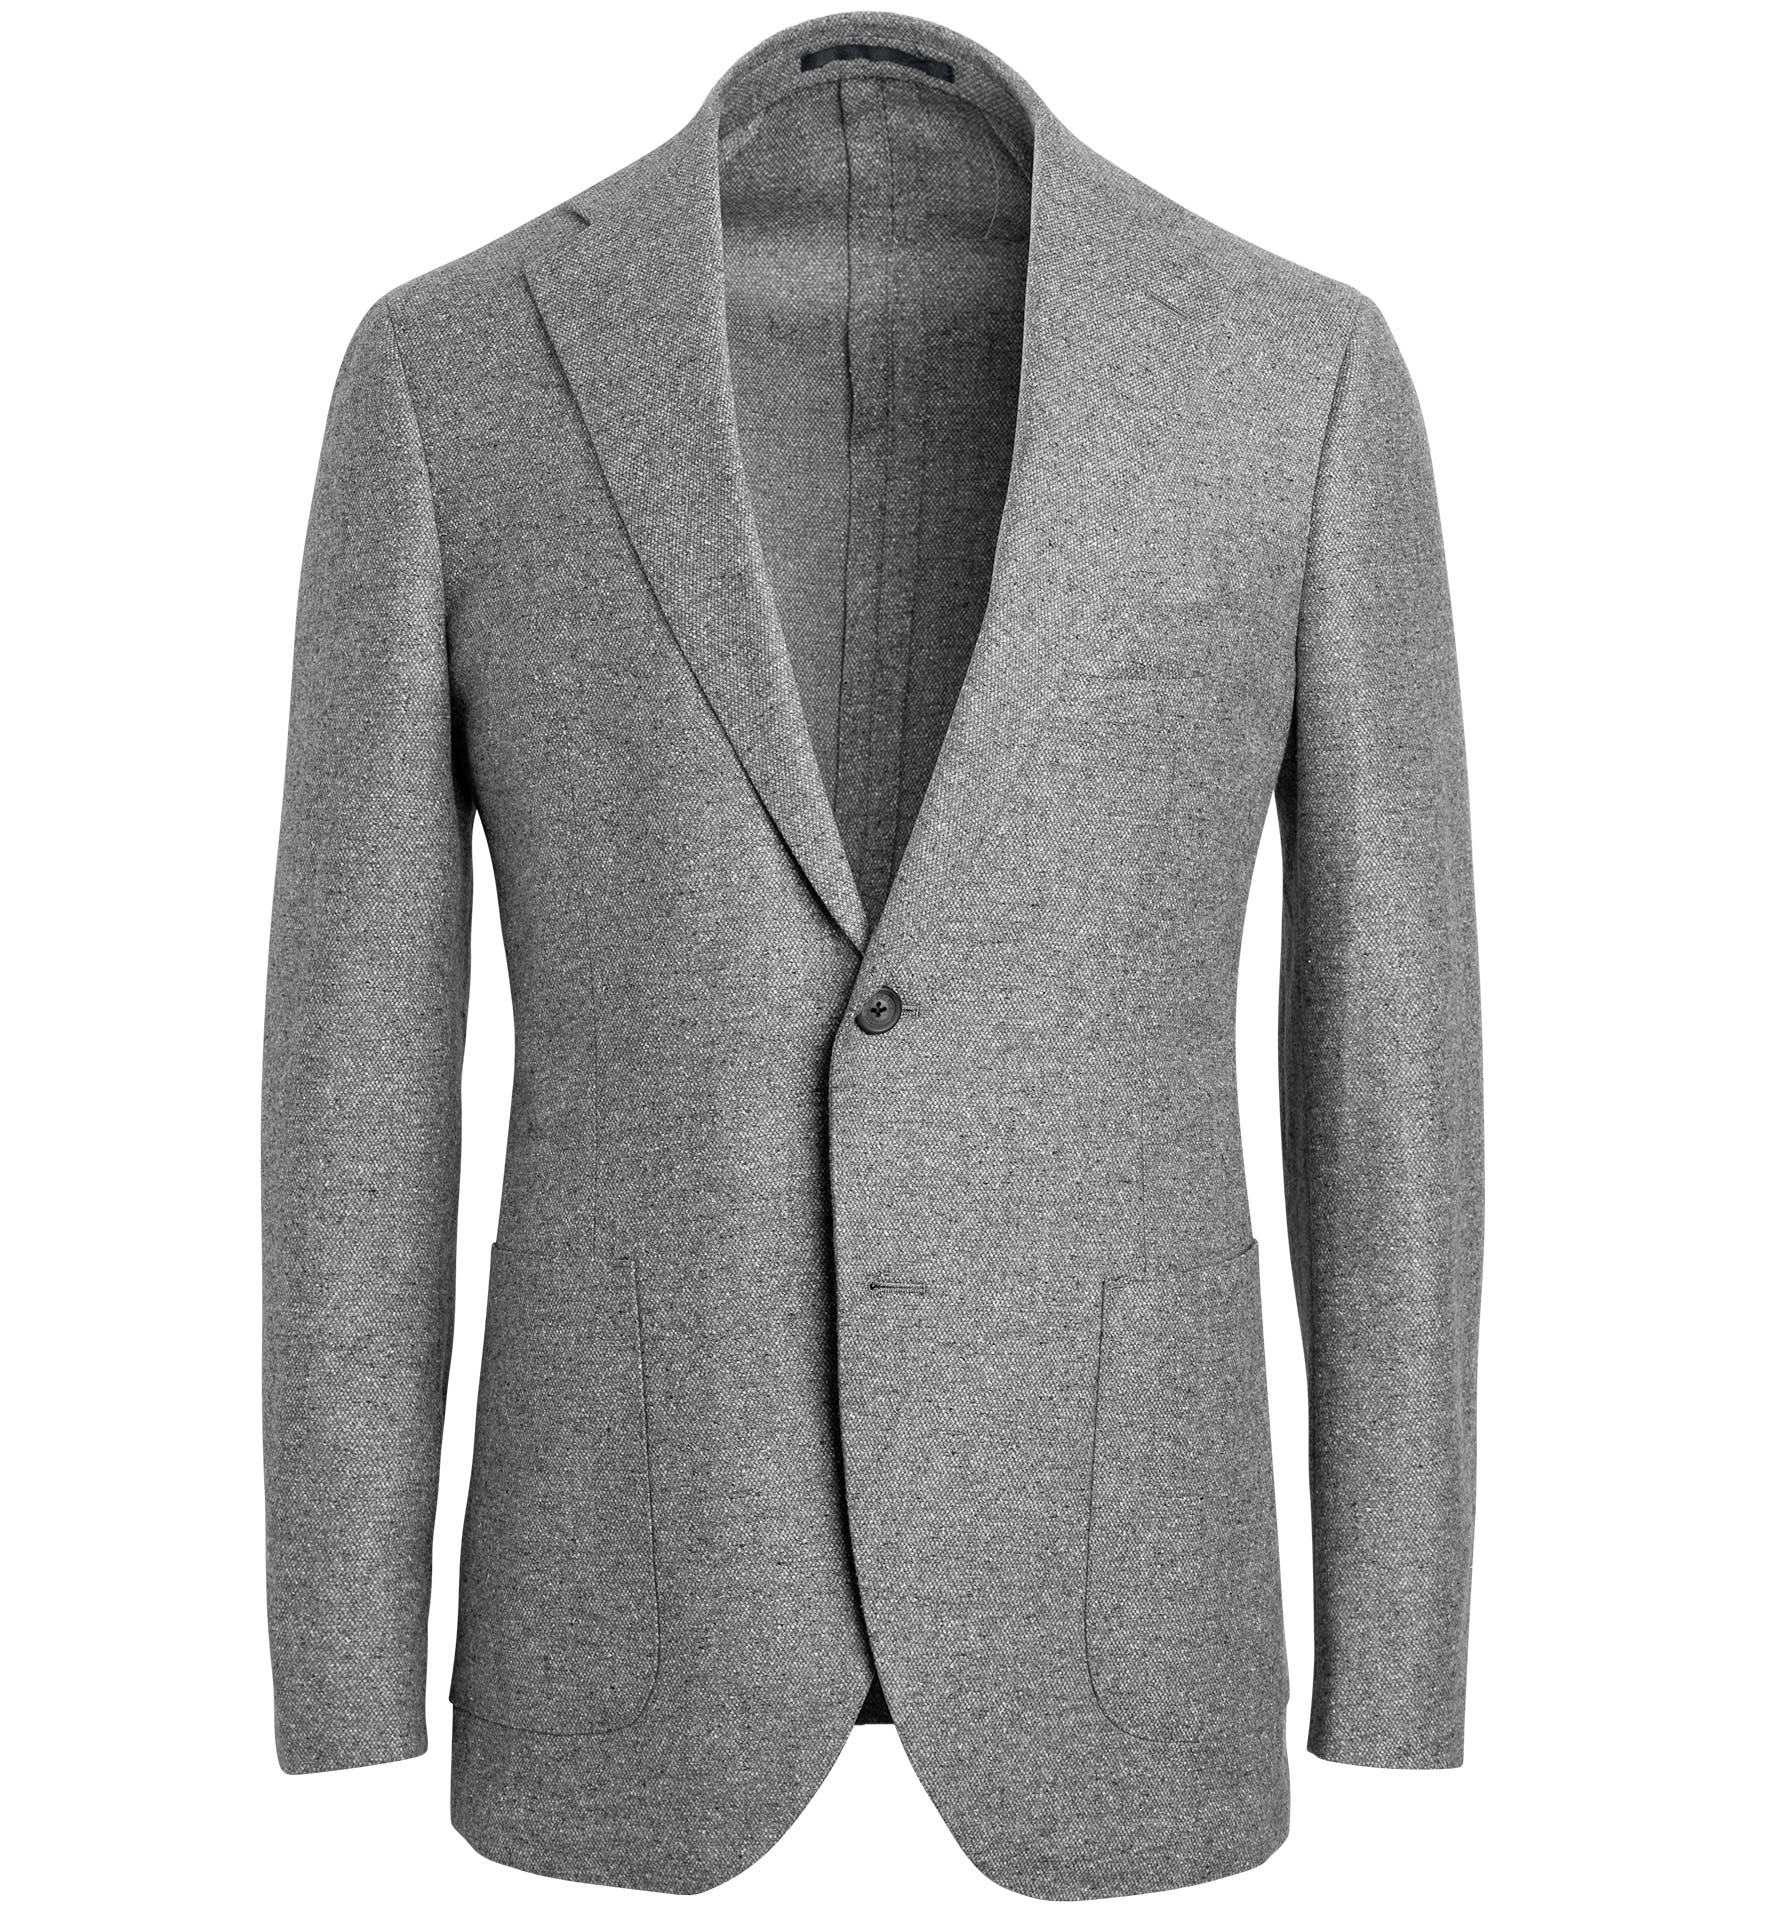 Zoom Image of Bedford Light Grey Wool and Silk Flannel Jacket